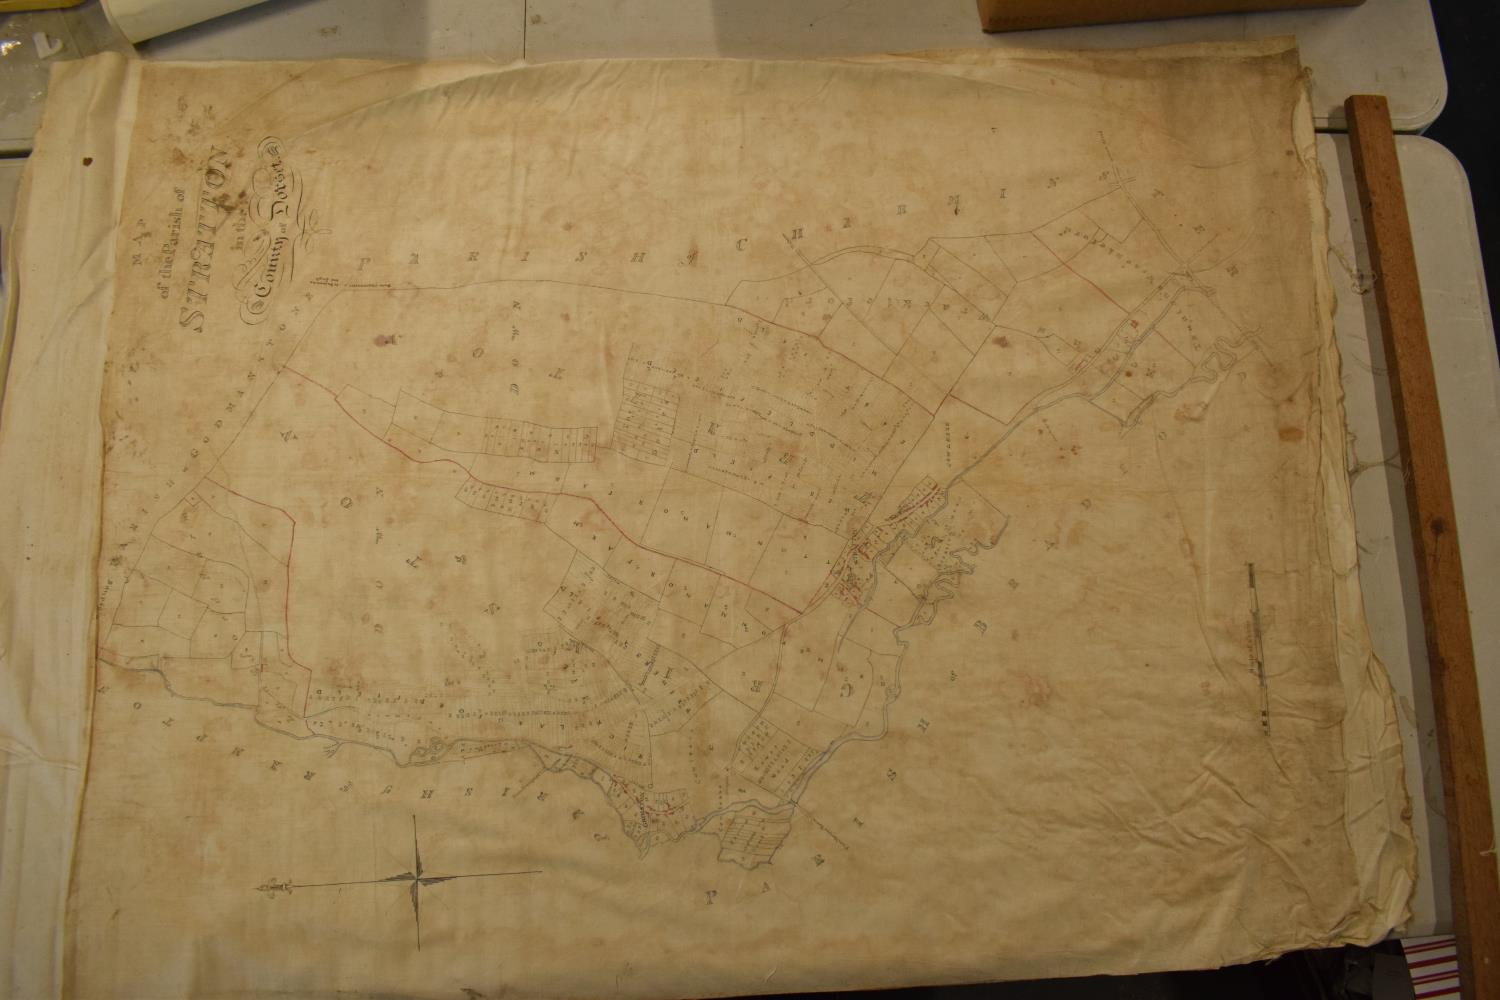 19th / early 20th century Ordnance Survey style maps to include a cloth version 'Map of the Parish